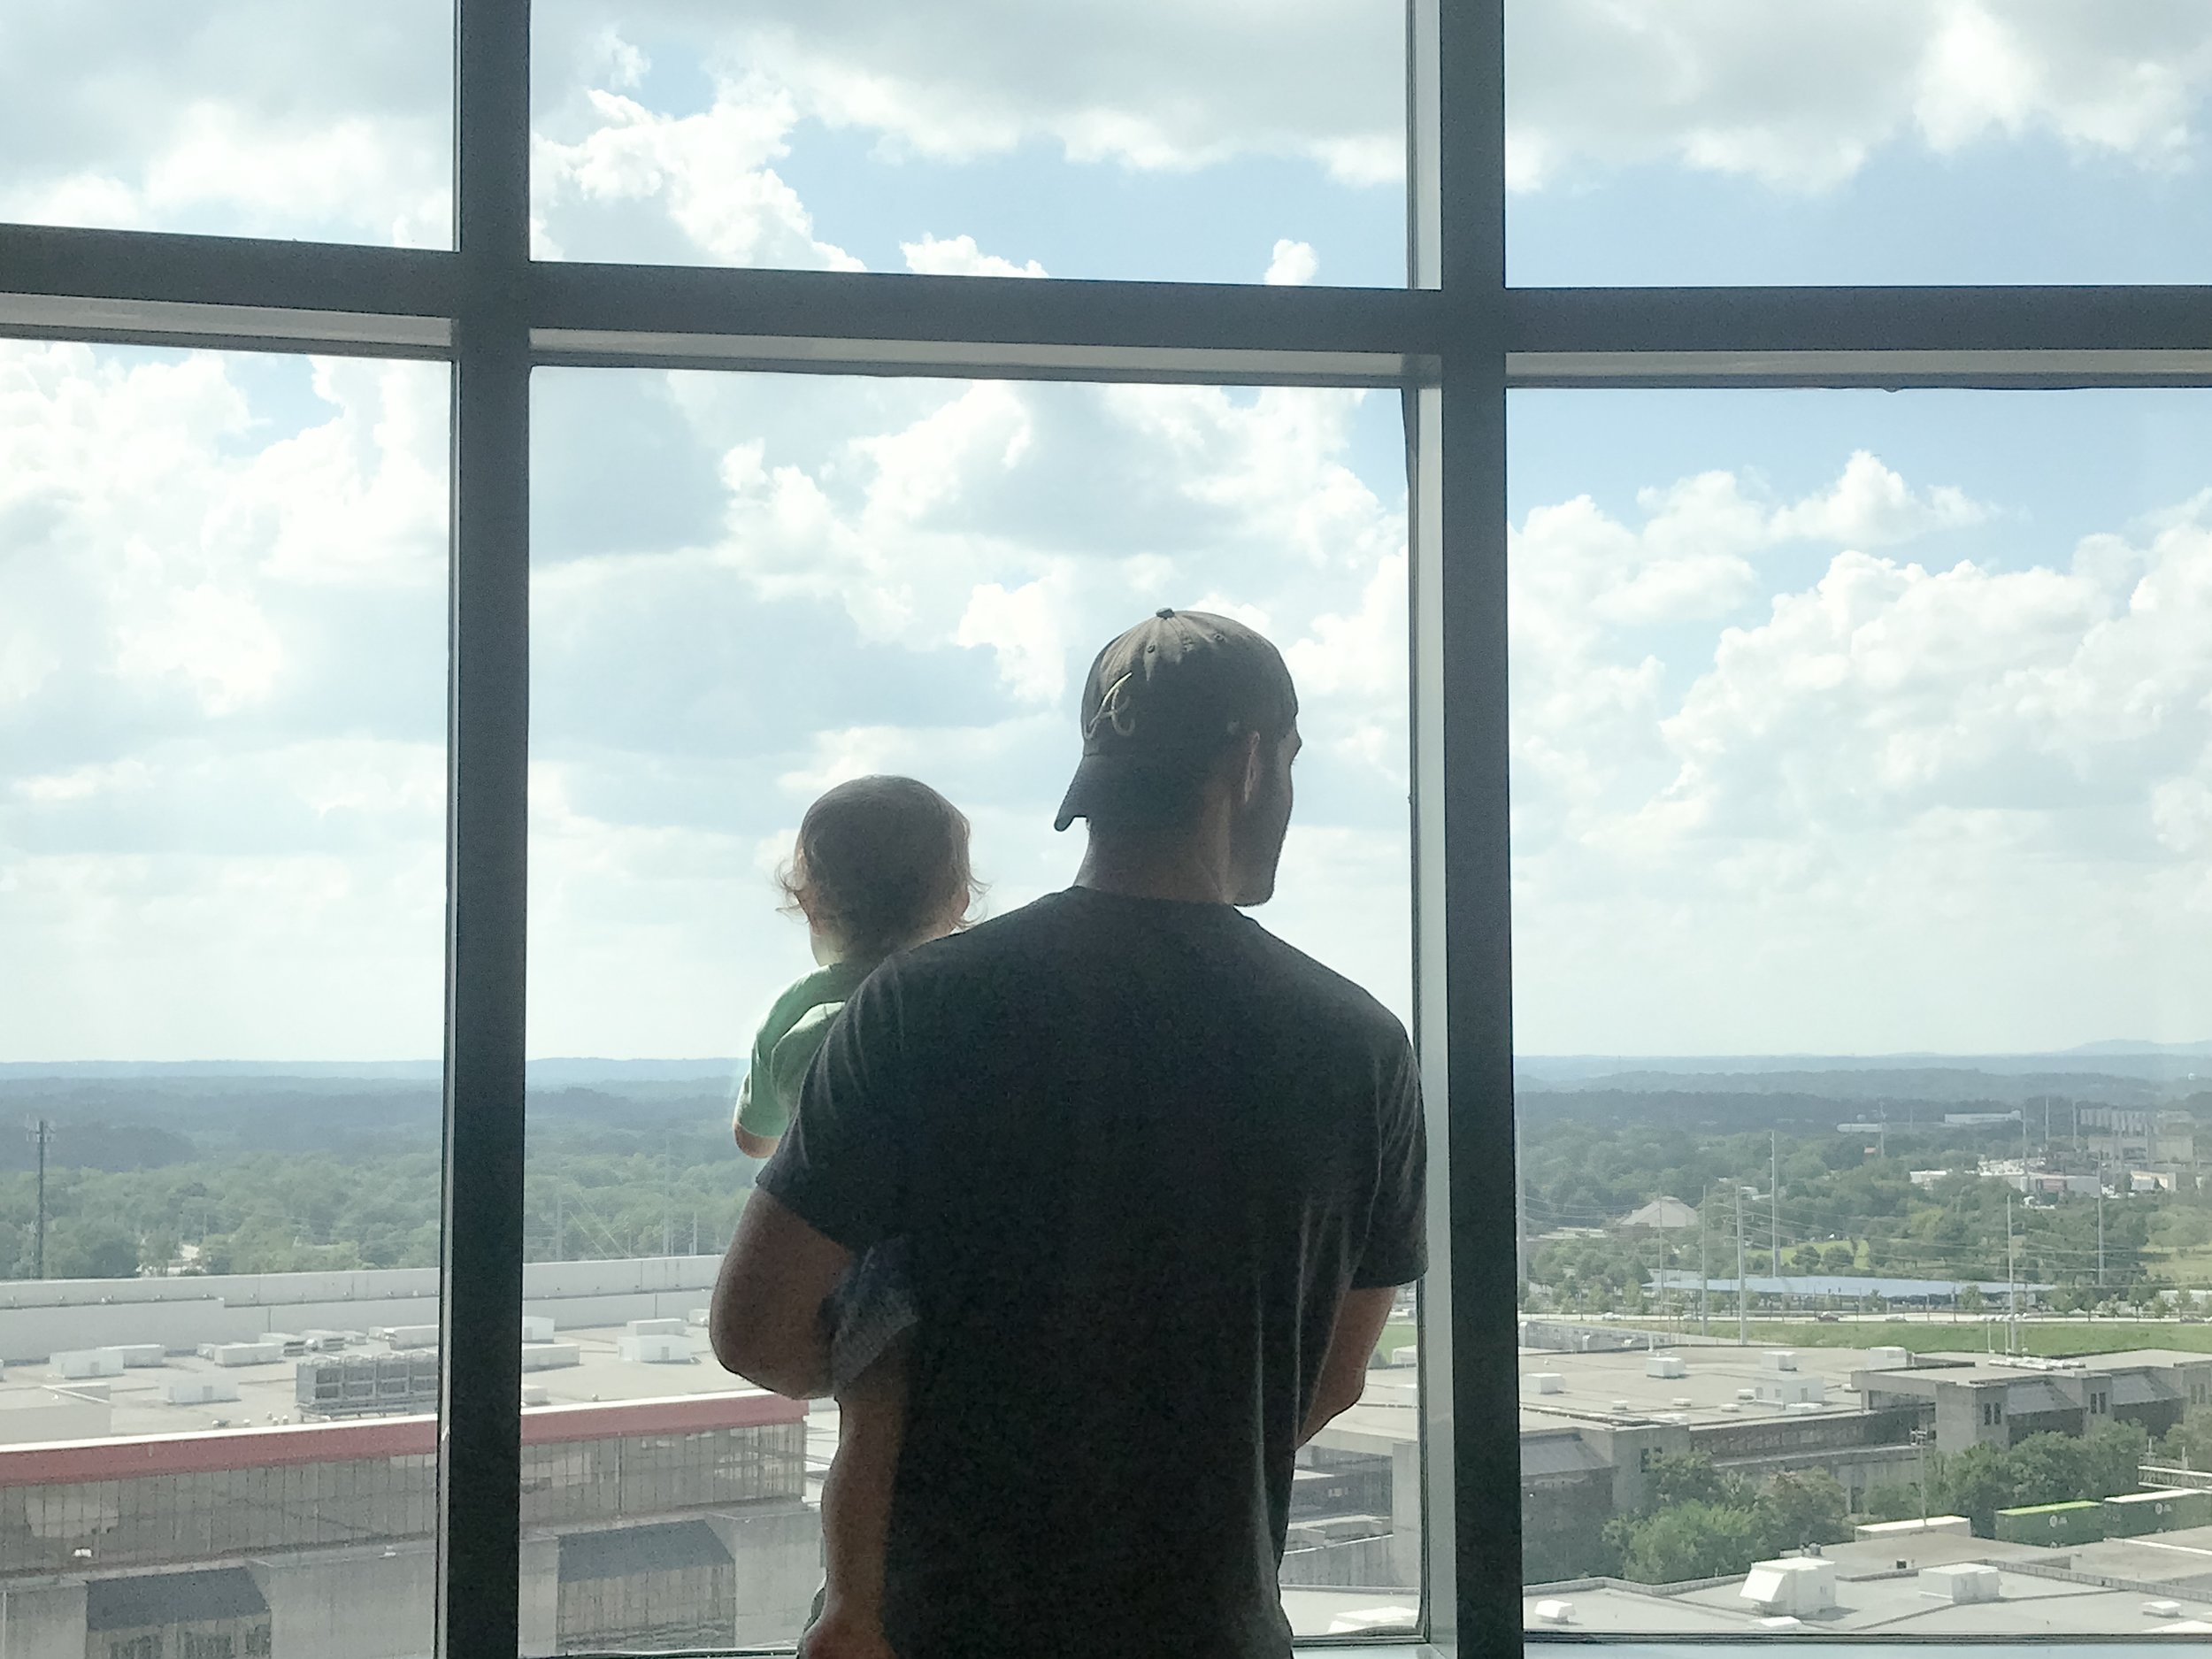 The only picture I took at the first hotel. We had a pretty neat view of the new Mercedes-Benz stadium, the Georgia Dome, and downtown. Also... look at that sweet Daddy's boy ;)